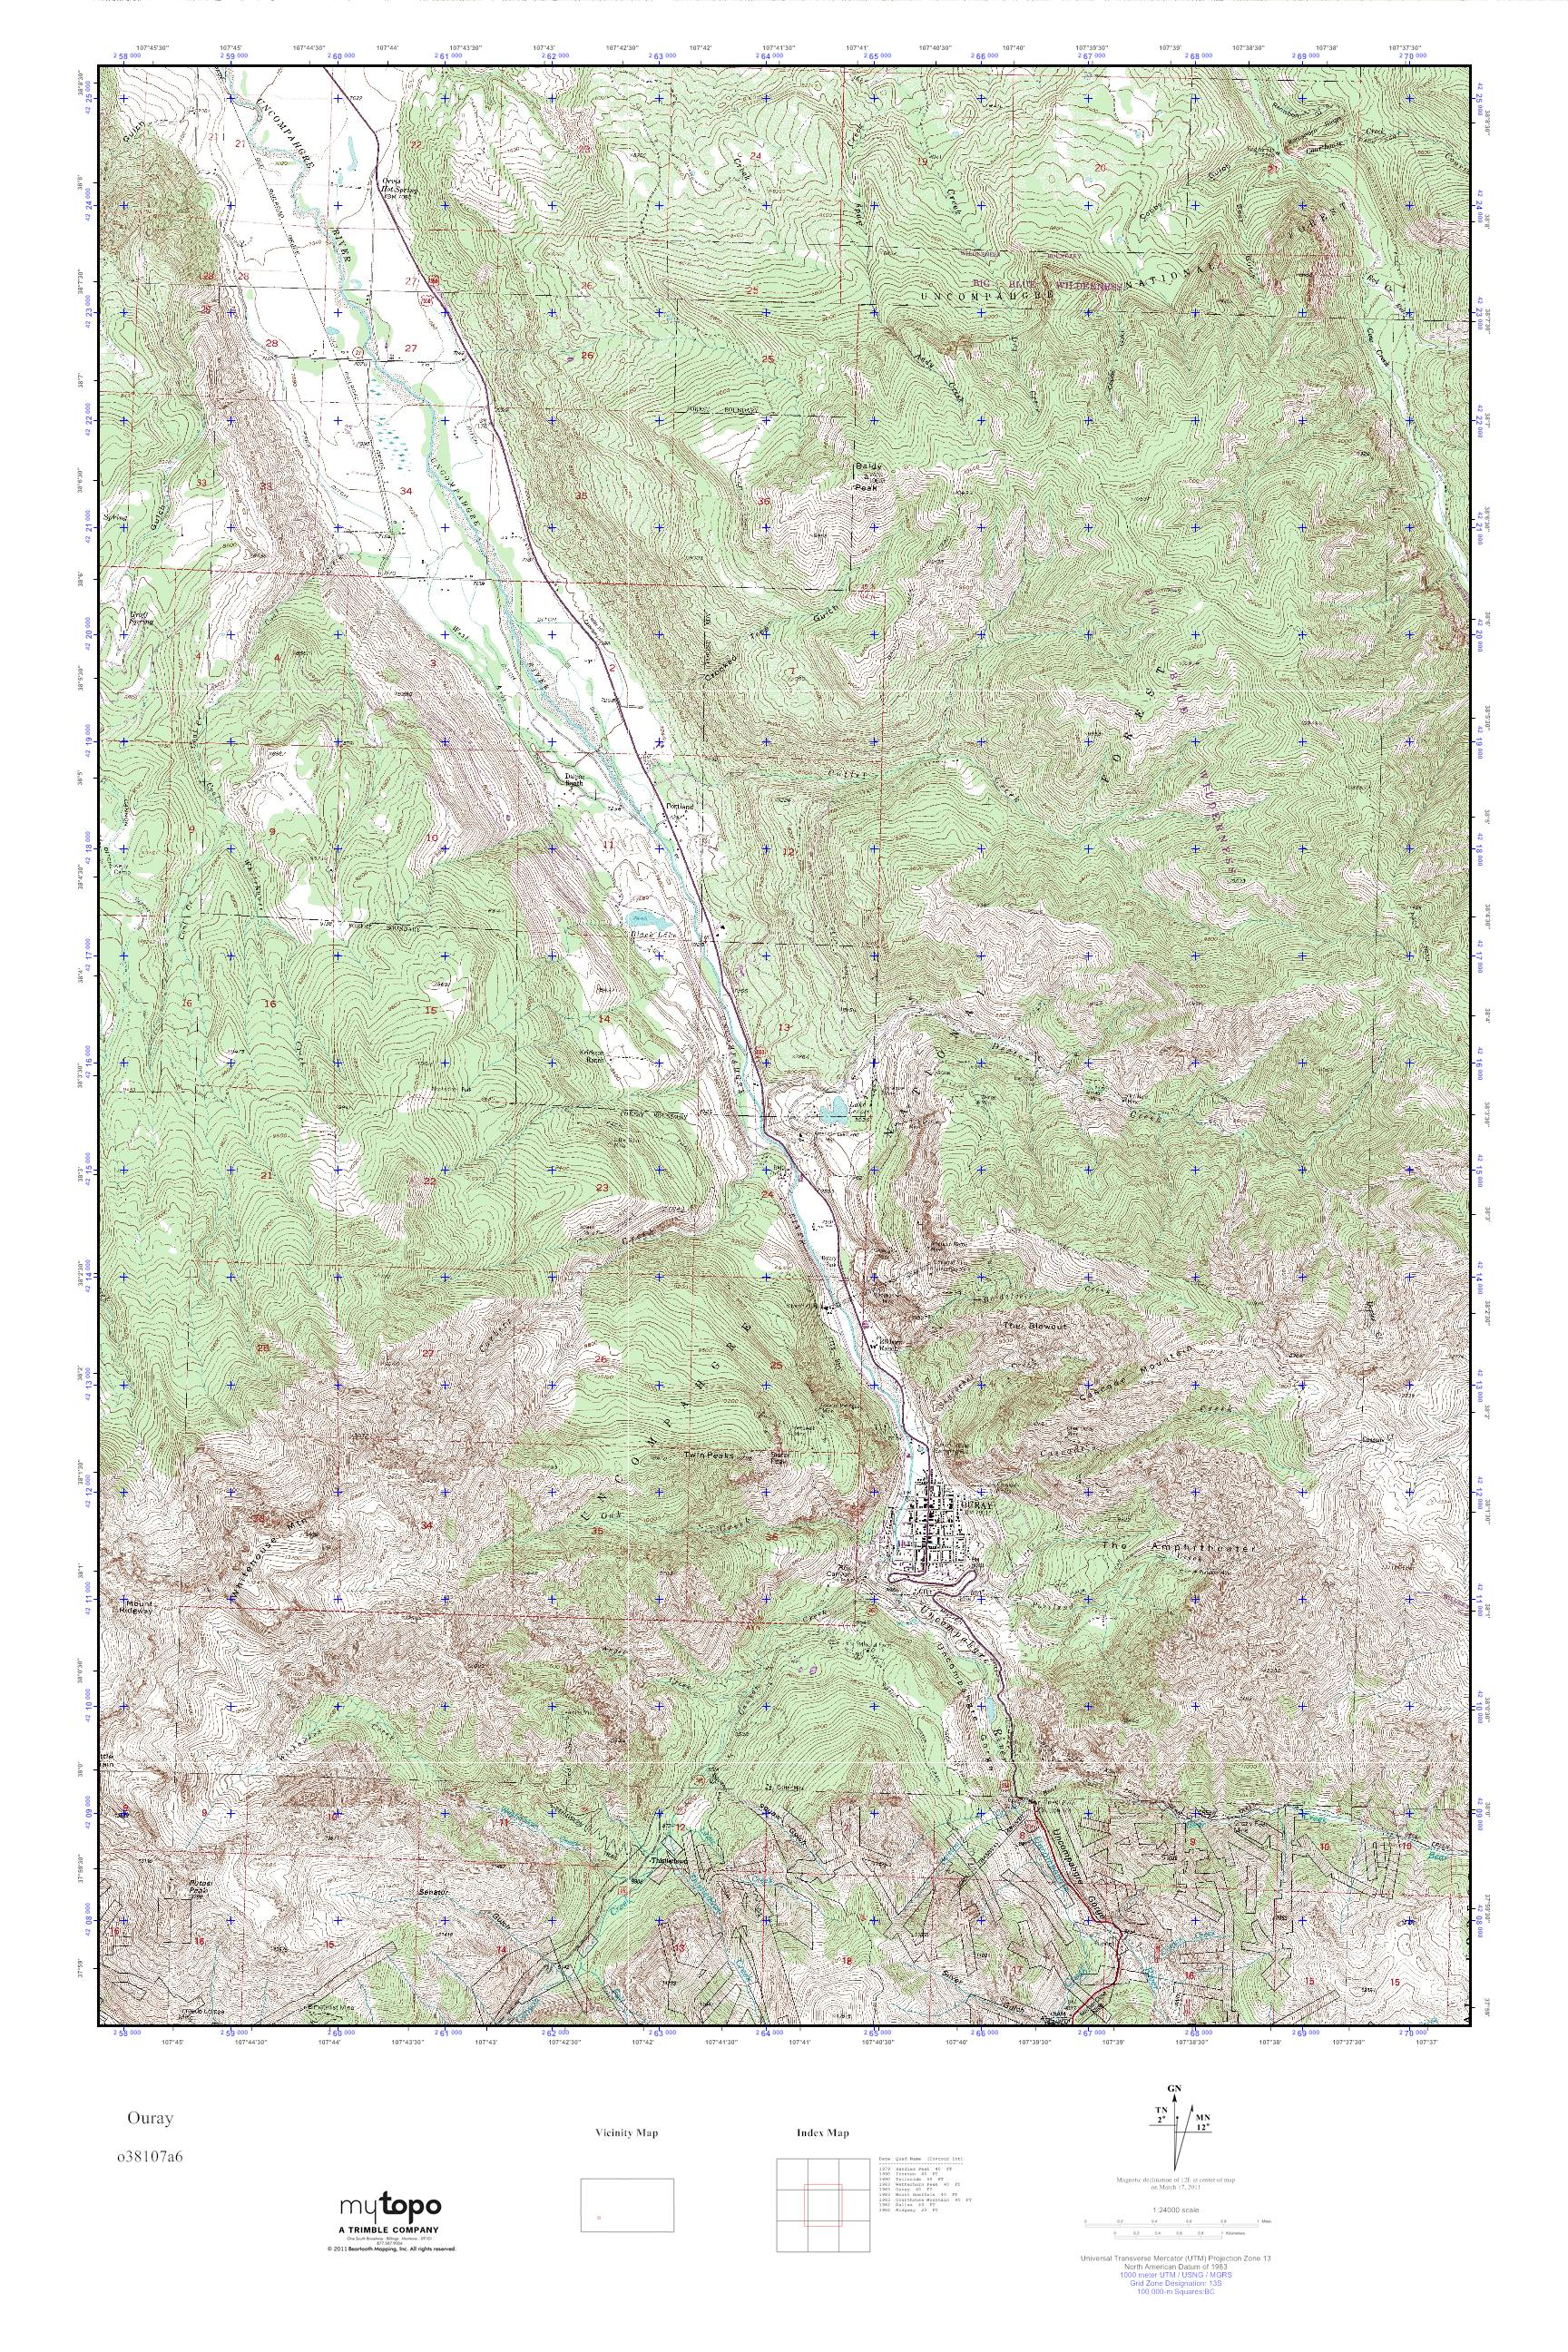 MyTopo Ouray, Colorado USGS Quad Topo Map